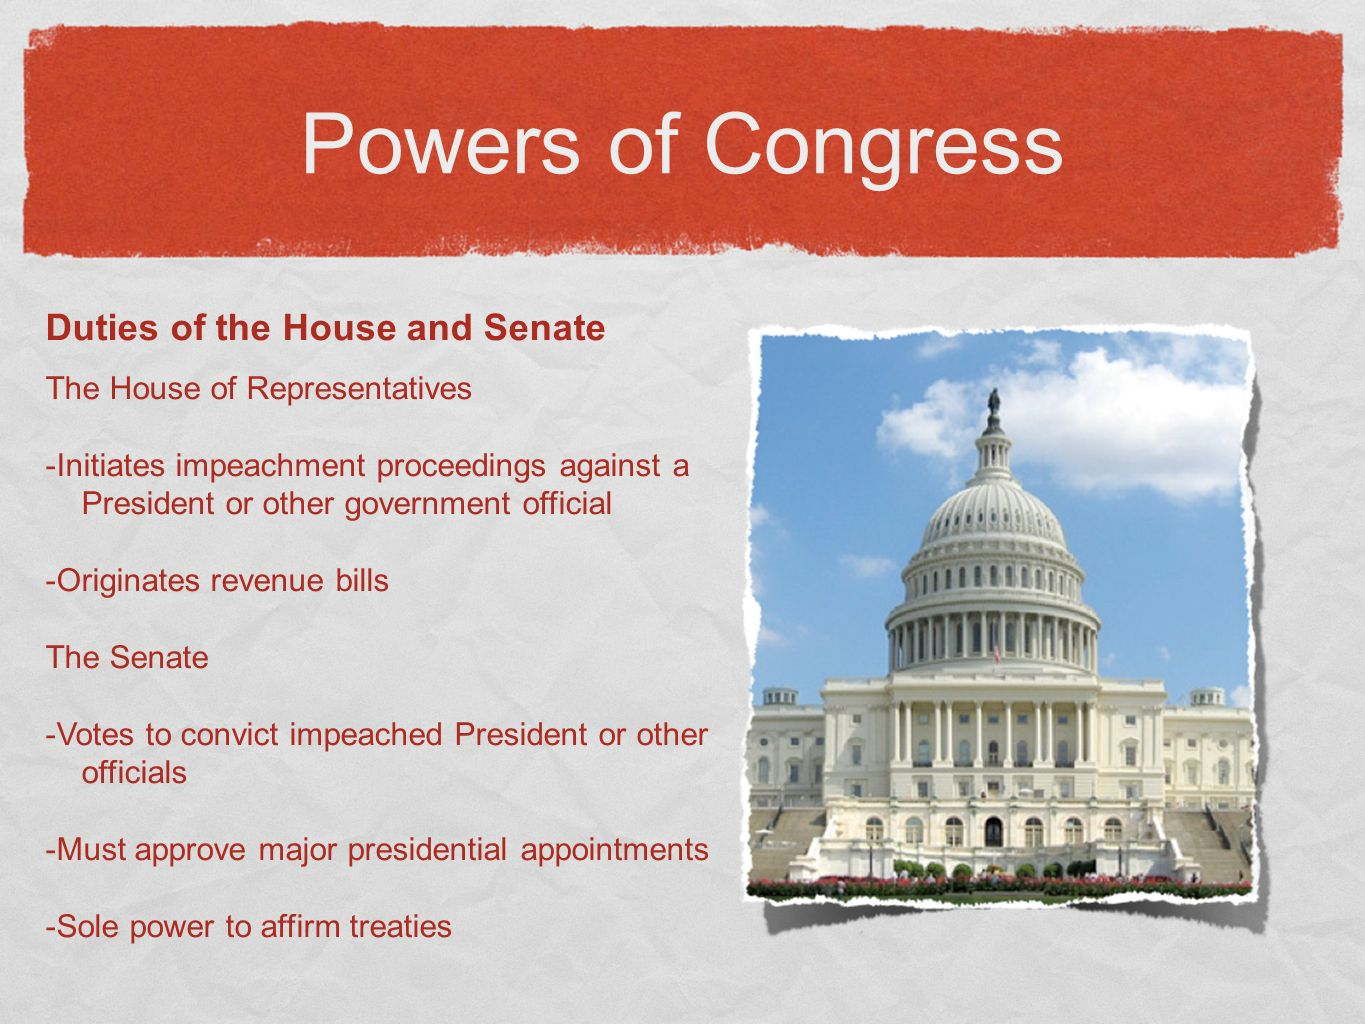 Powers of Congress Duties of the House and Senate The House of Representatives -Initiates impeachment proceedings against a President or other government official -Originates revenue bills The Senate -Votes to convict impeached President or other officials -Must approve major presidential appointments -Sole power to affirm treaties